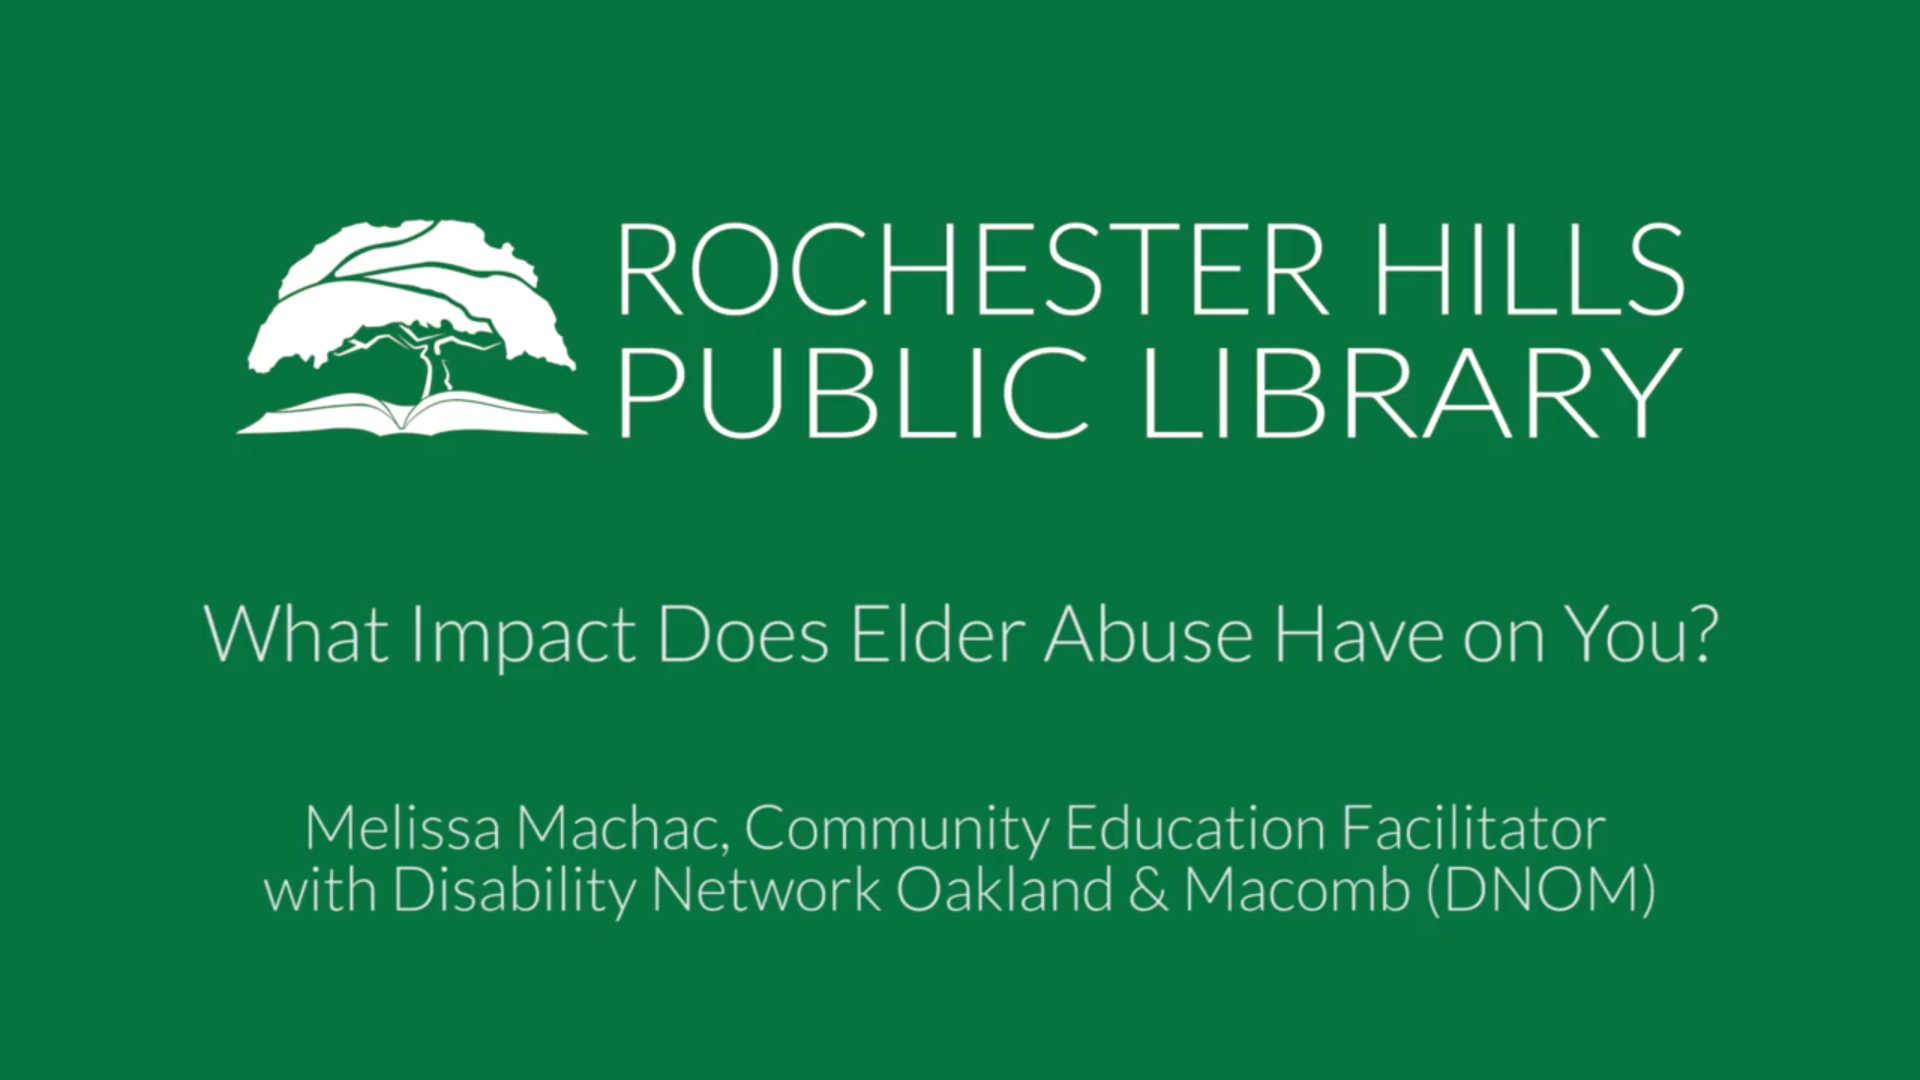 What Impact Does Elder Abuse Have on You?